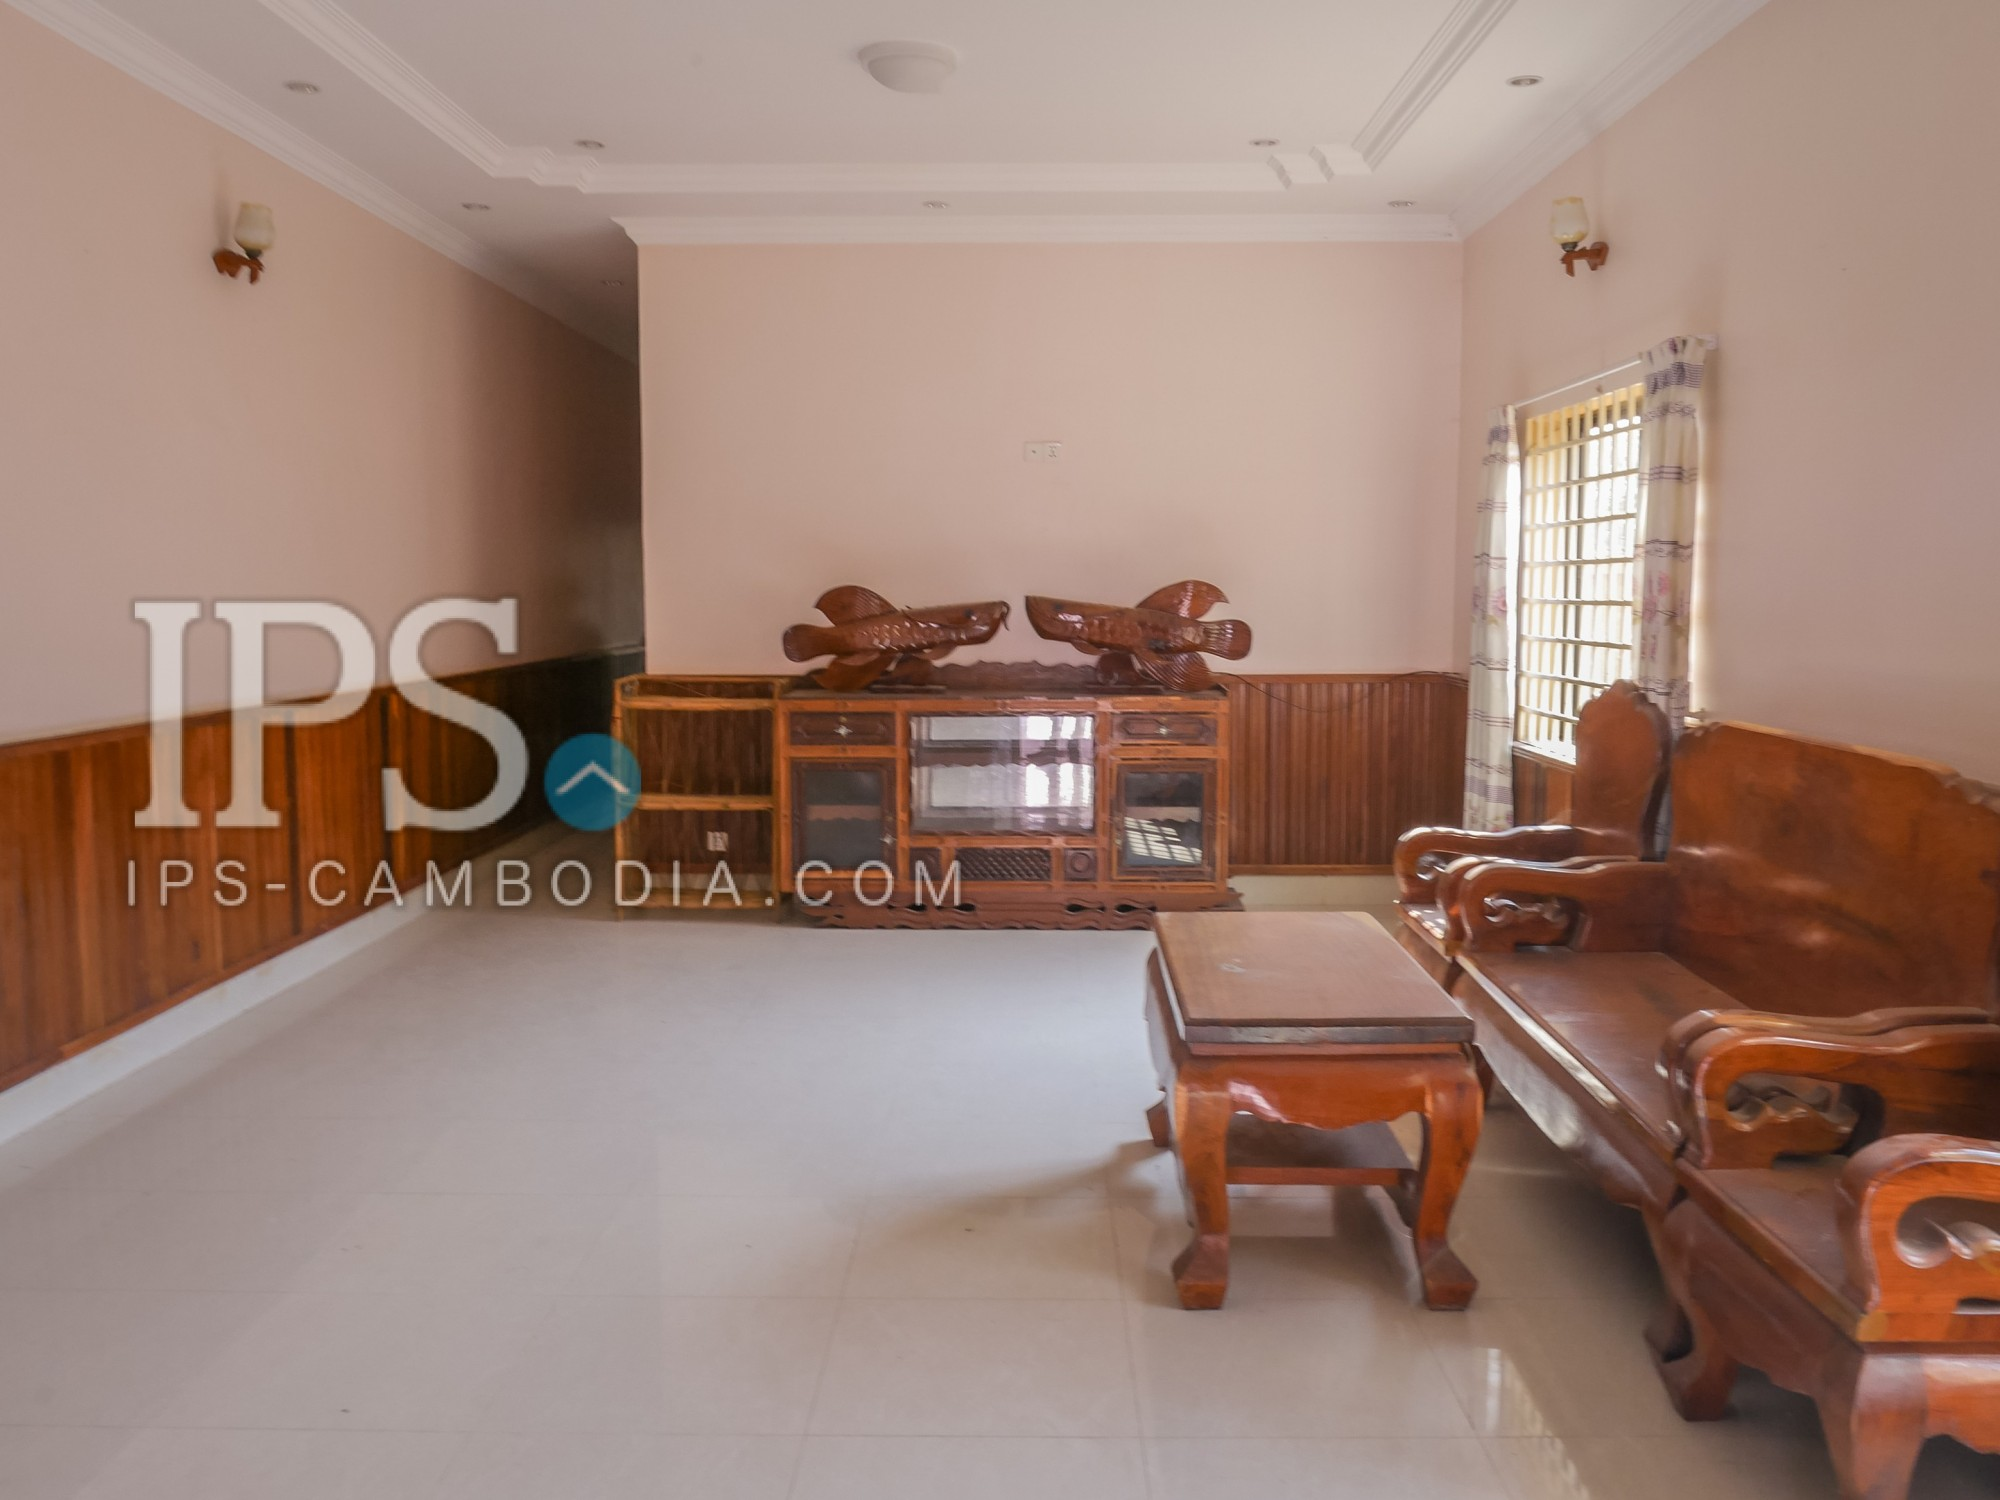 4 Bedroom House For Rent - Siem Reap